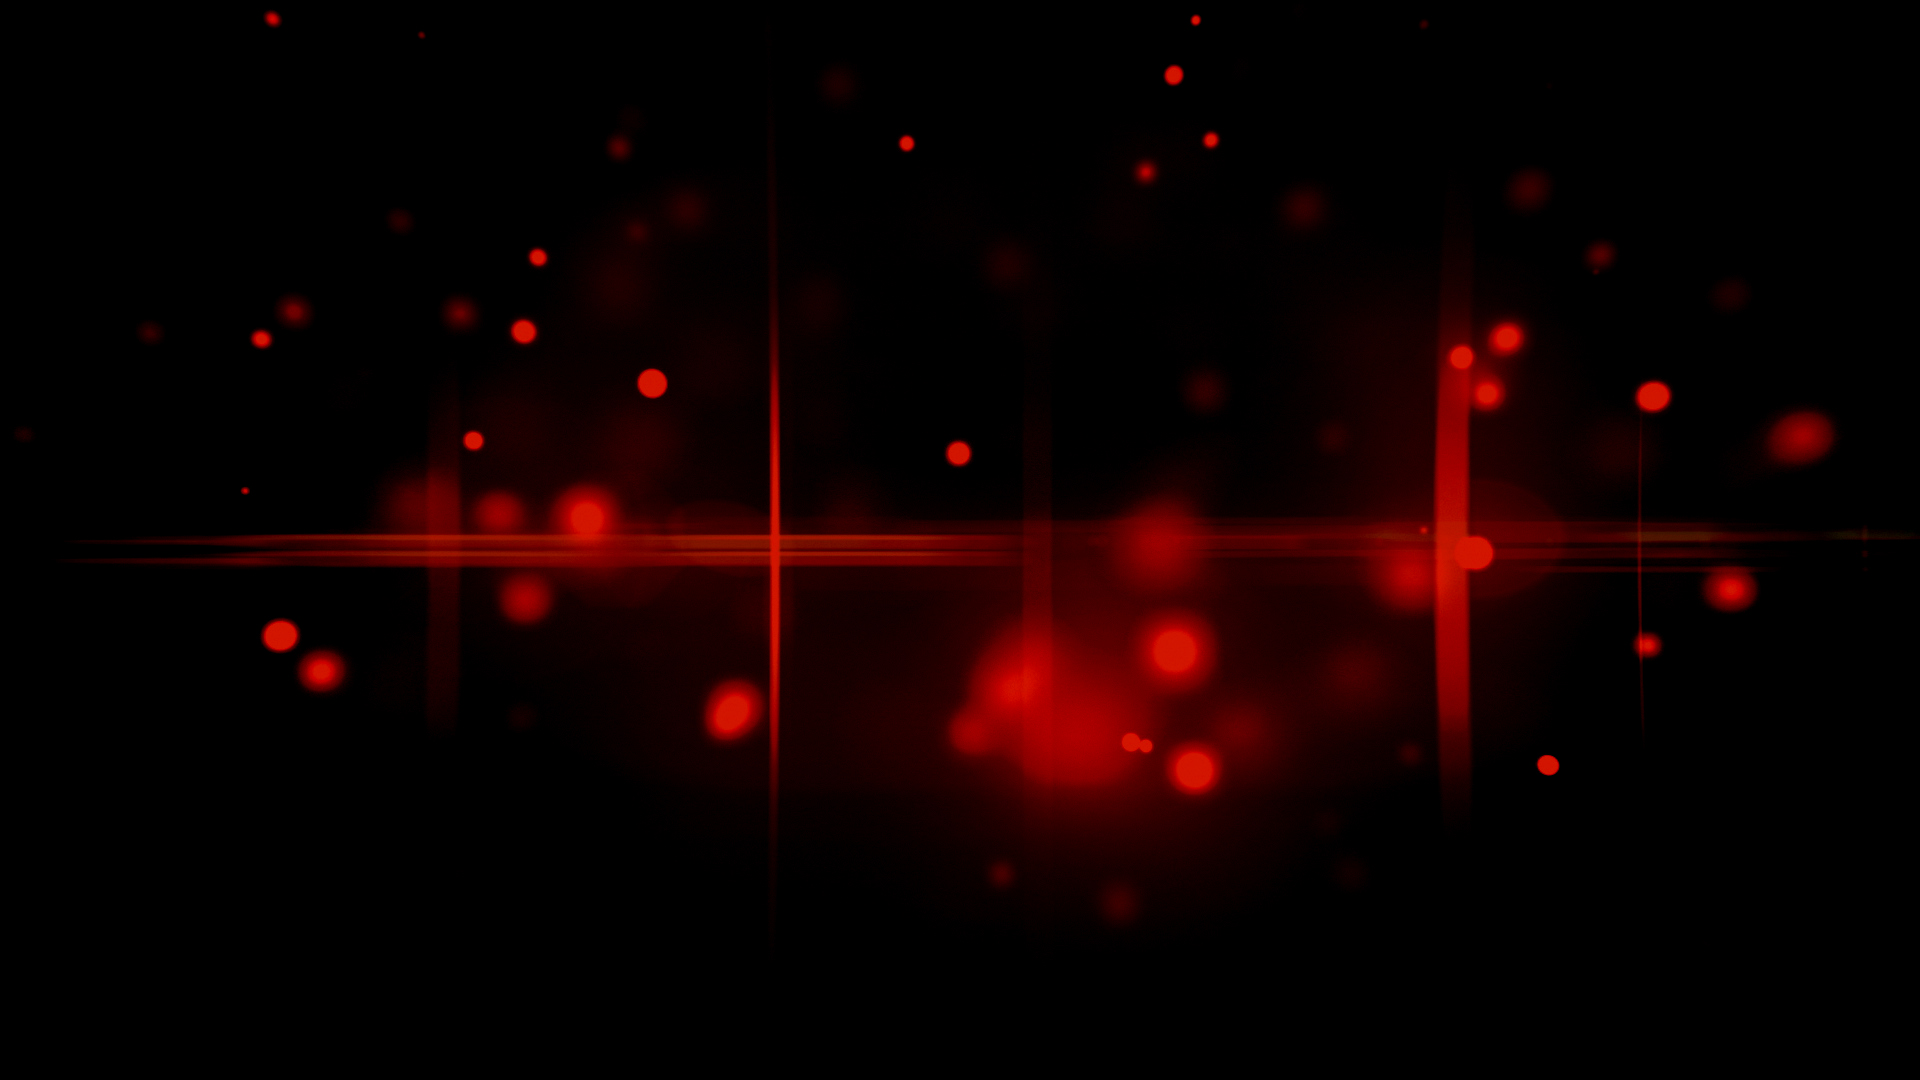 Dark Particle Background